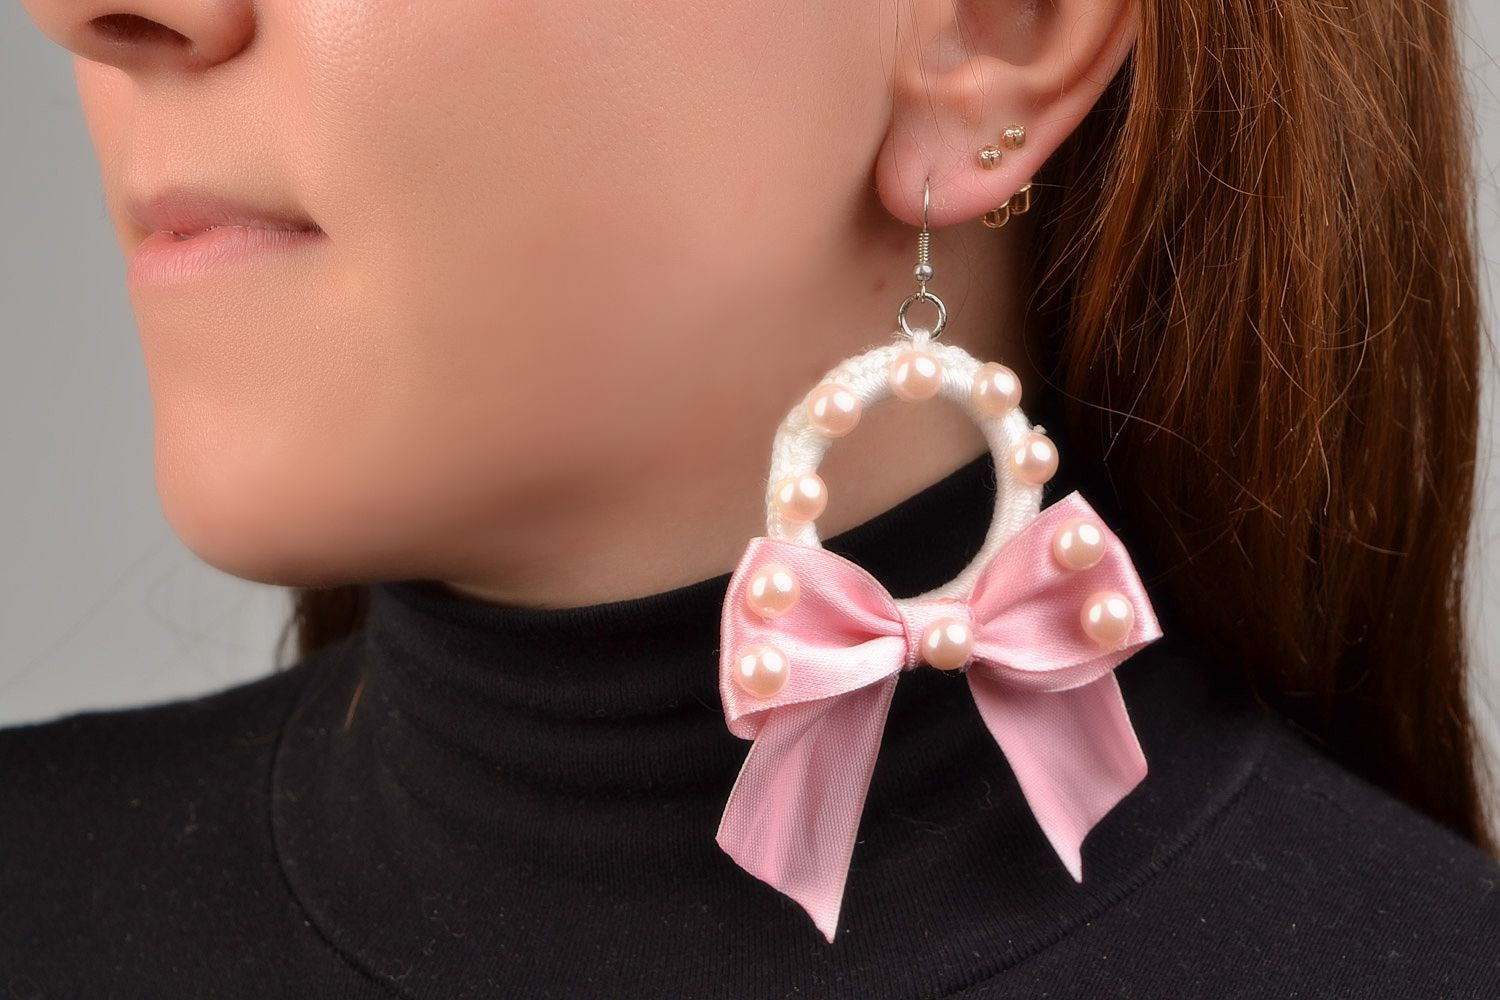 Braided earrings made of plastic rings and threads with pink ribbons present for girlfriend photo 1